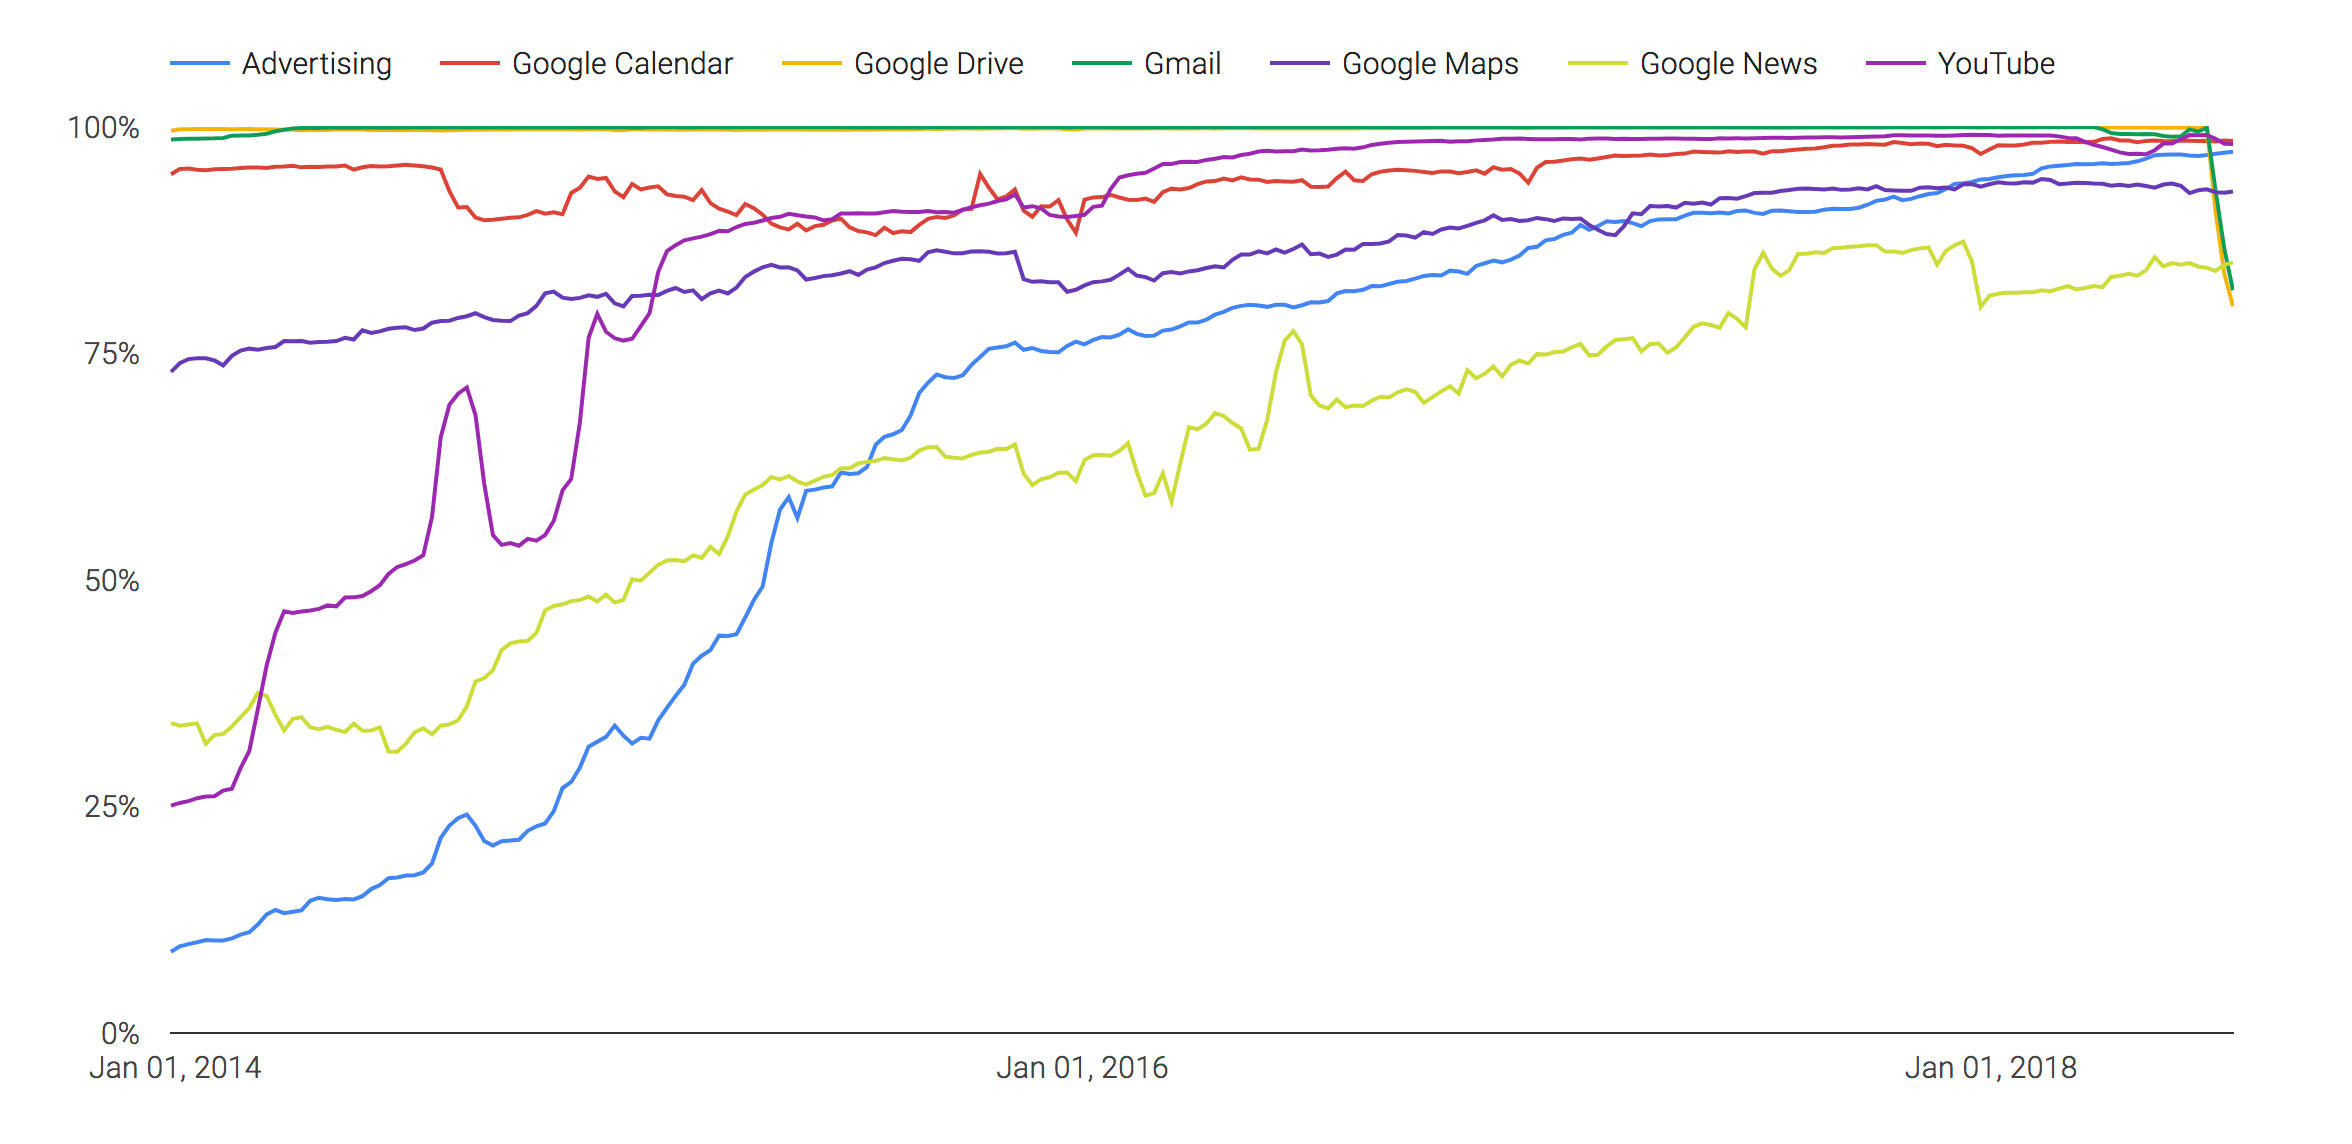 Google's periodic transparency report generally shows a steady increase in the fraction of traffic to its websites that's protected by HTTPS encryption.